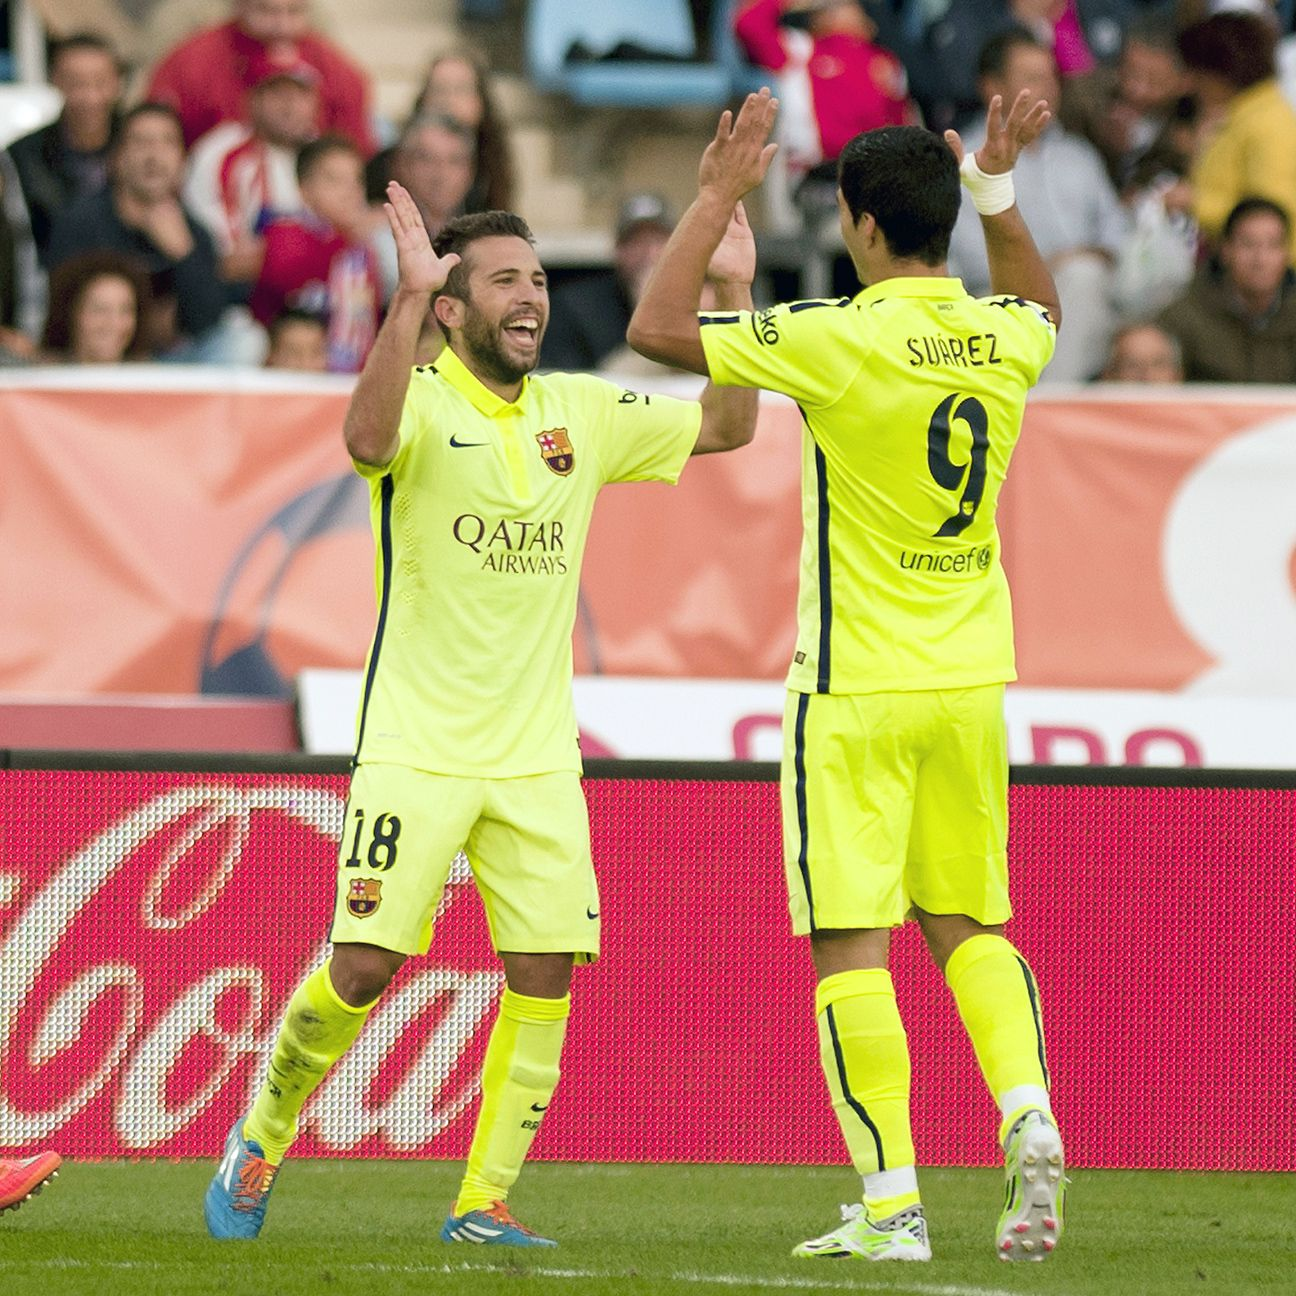 Luis Suarez's play off the bench sparked Barcelona to two second-half goals, including Jordi Alba's late winner.